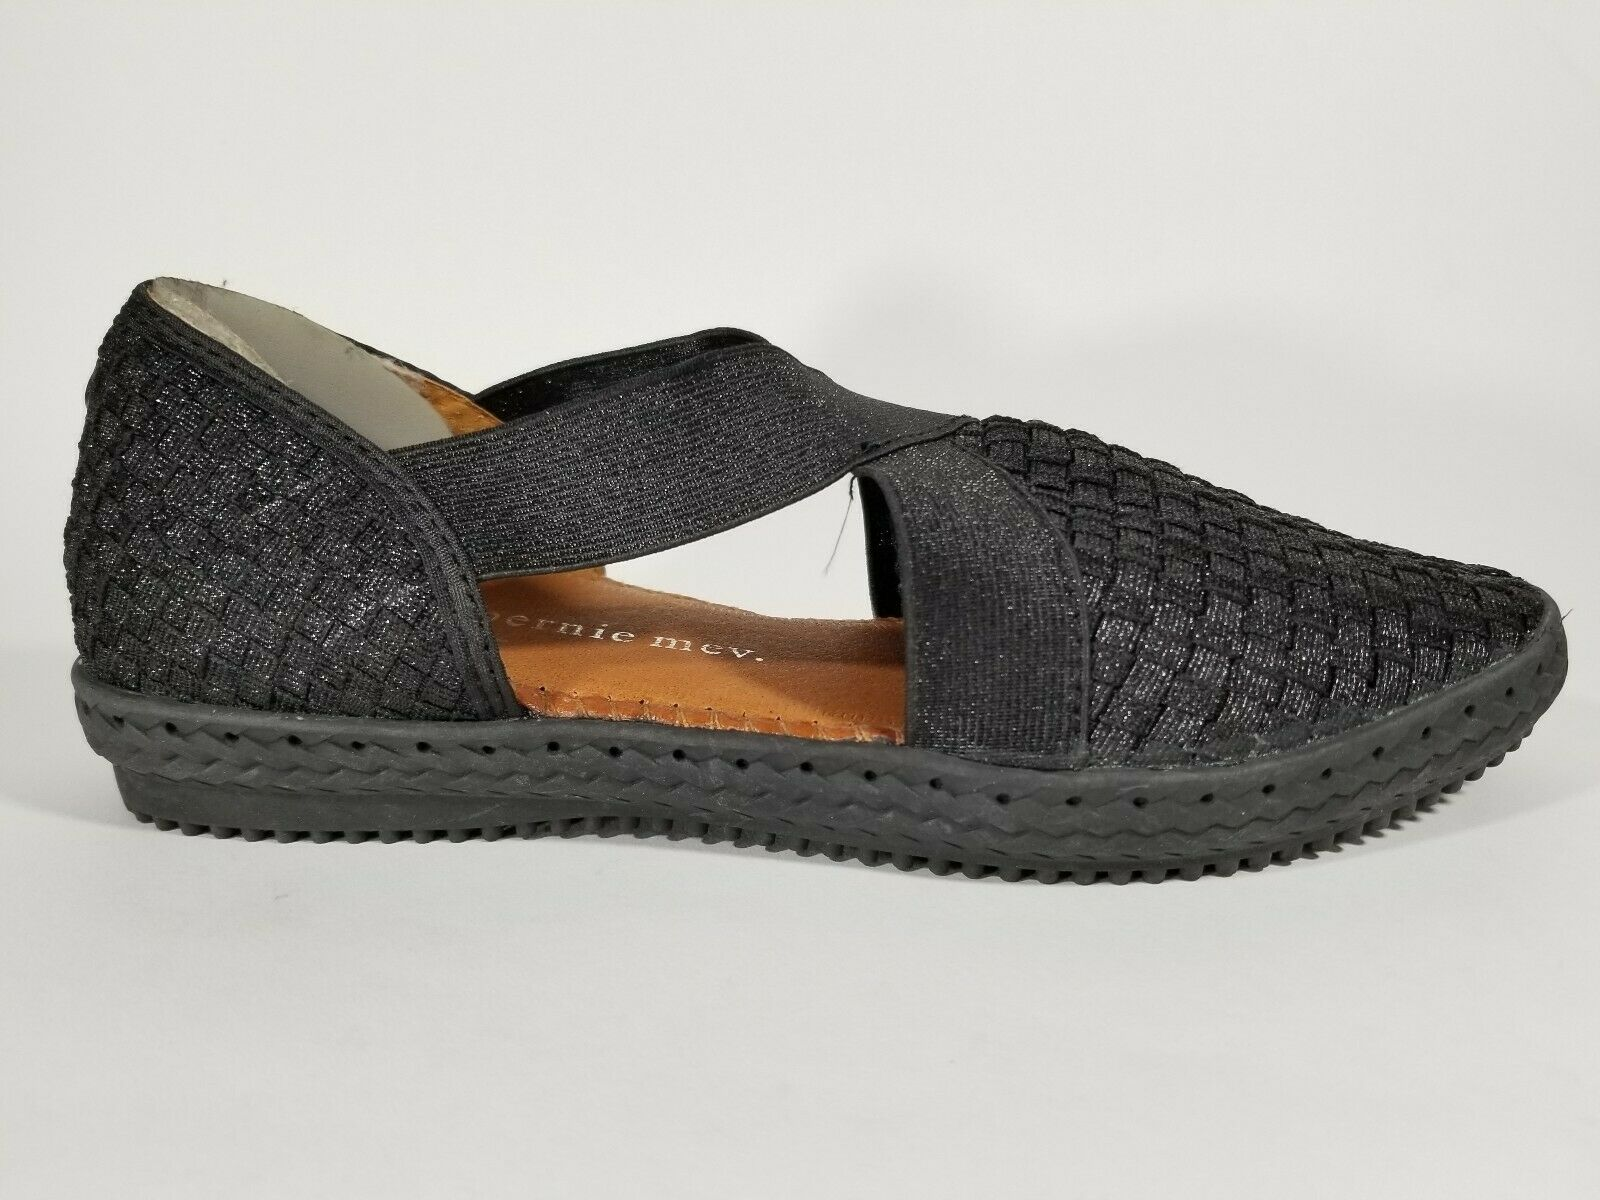 Bernie Mev Black Woven Flats X Straps Slip On Casual Comfort Women shoes 38 7-7.5